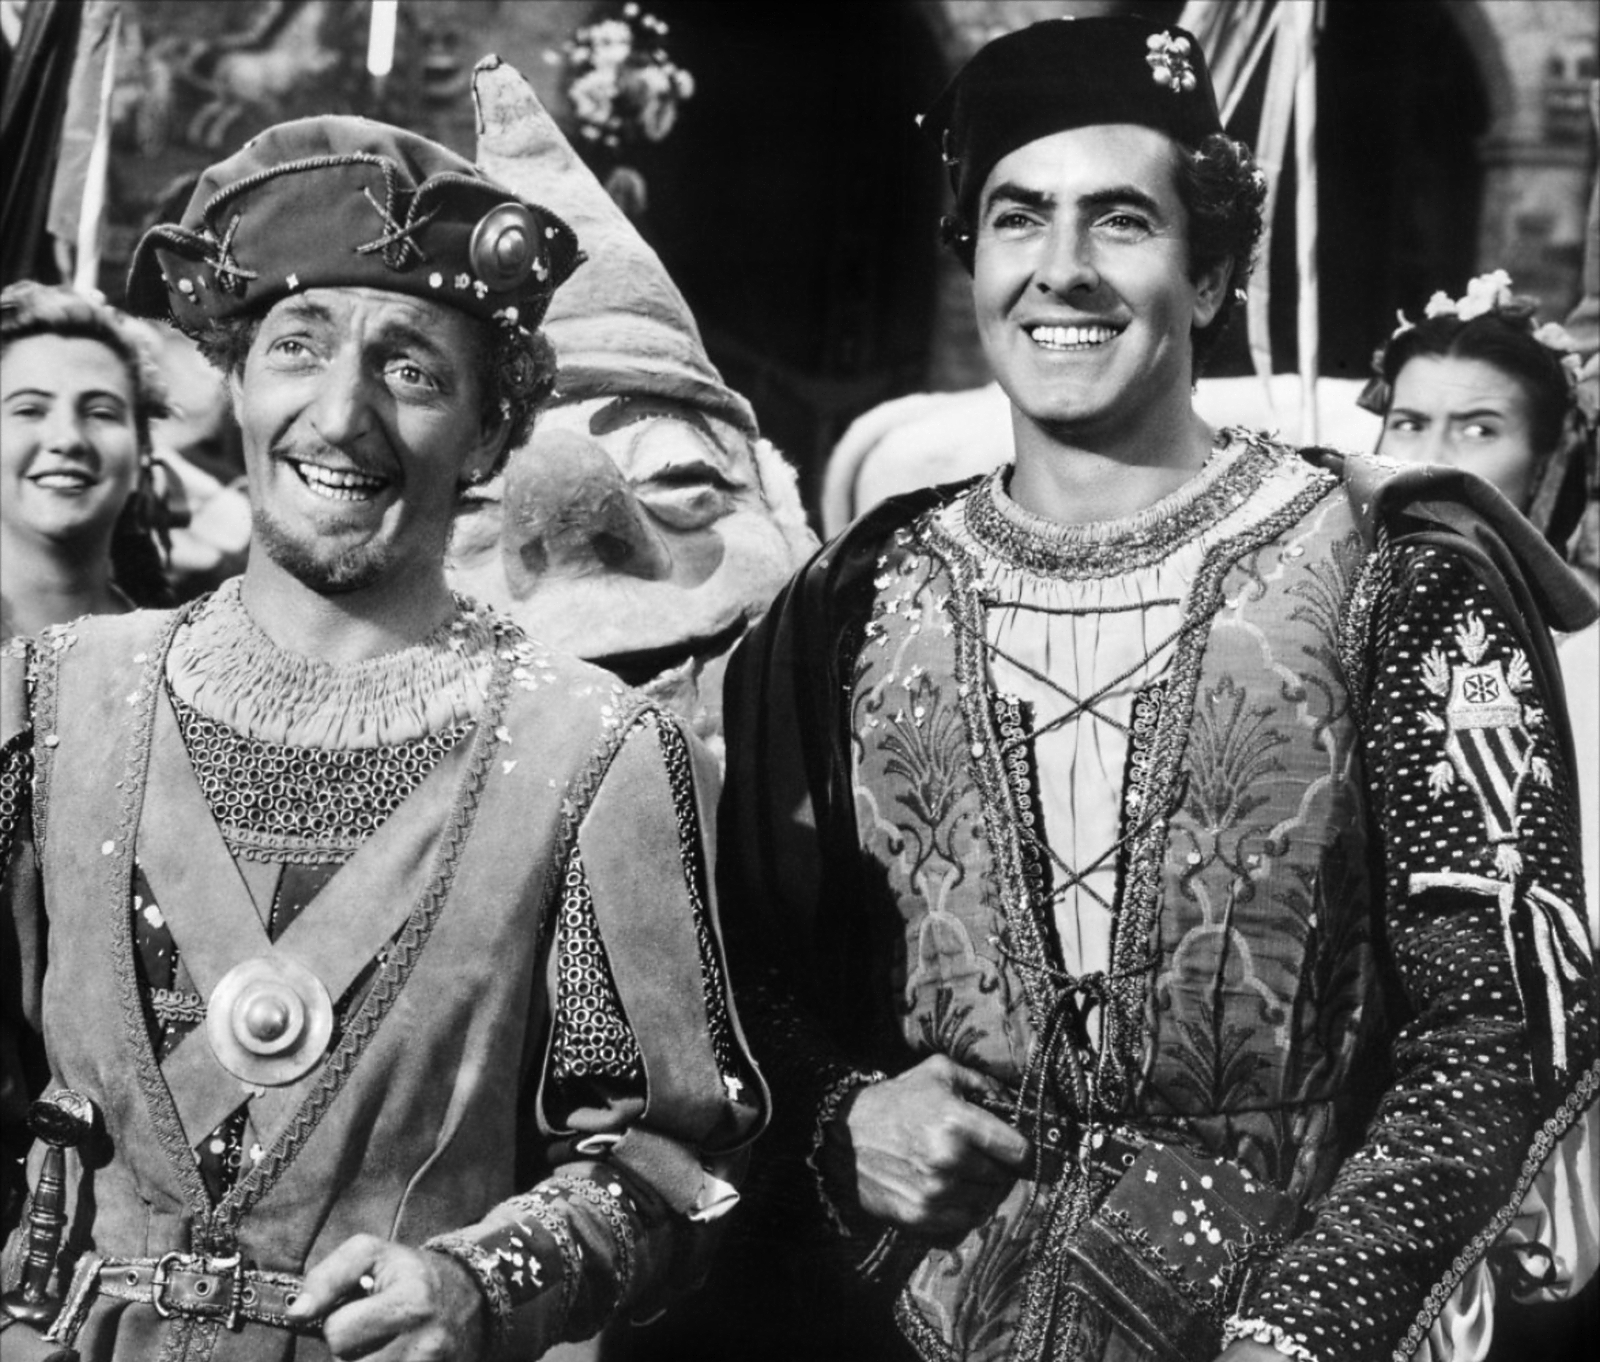 Tyrone Power, Jr. in Prince of Foxes with With Everett Sloane (L)